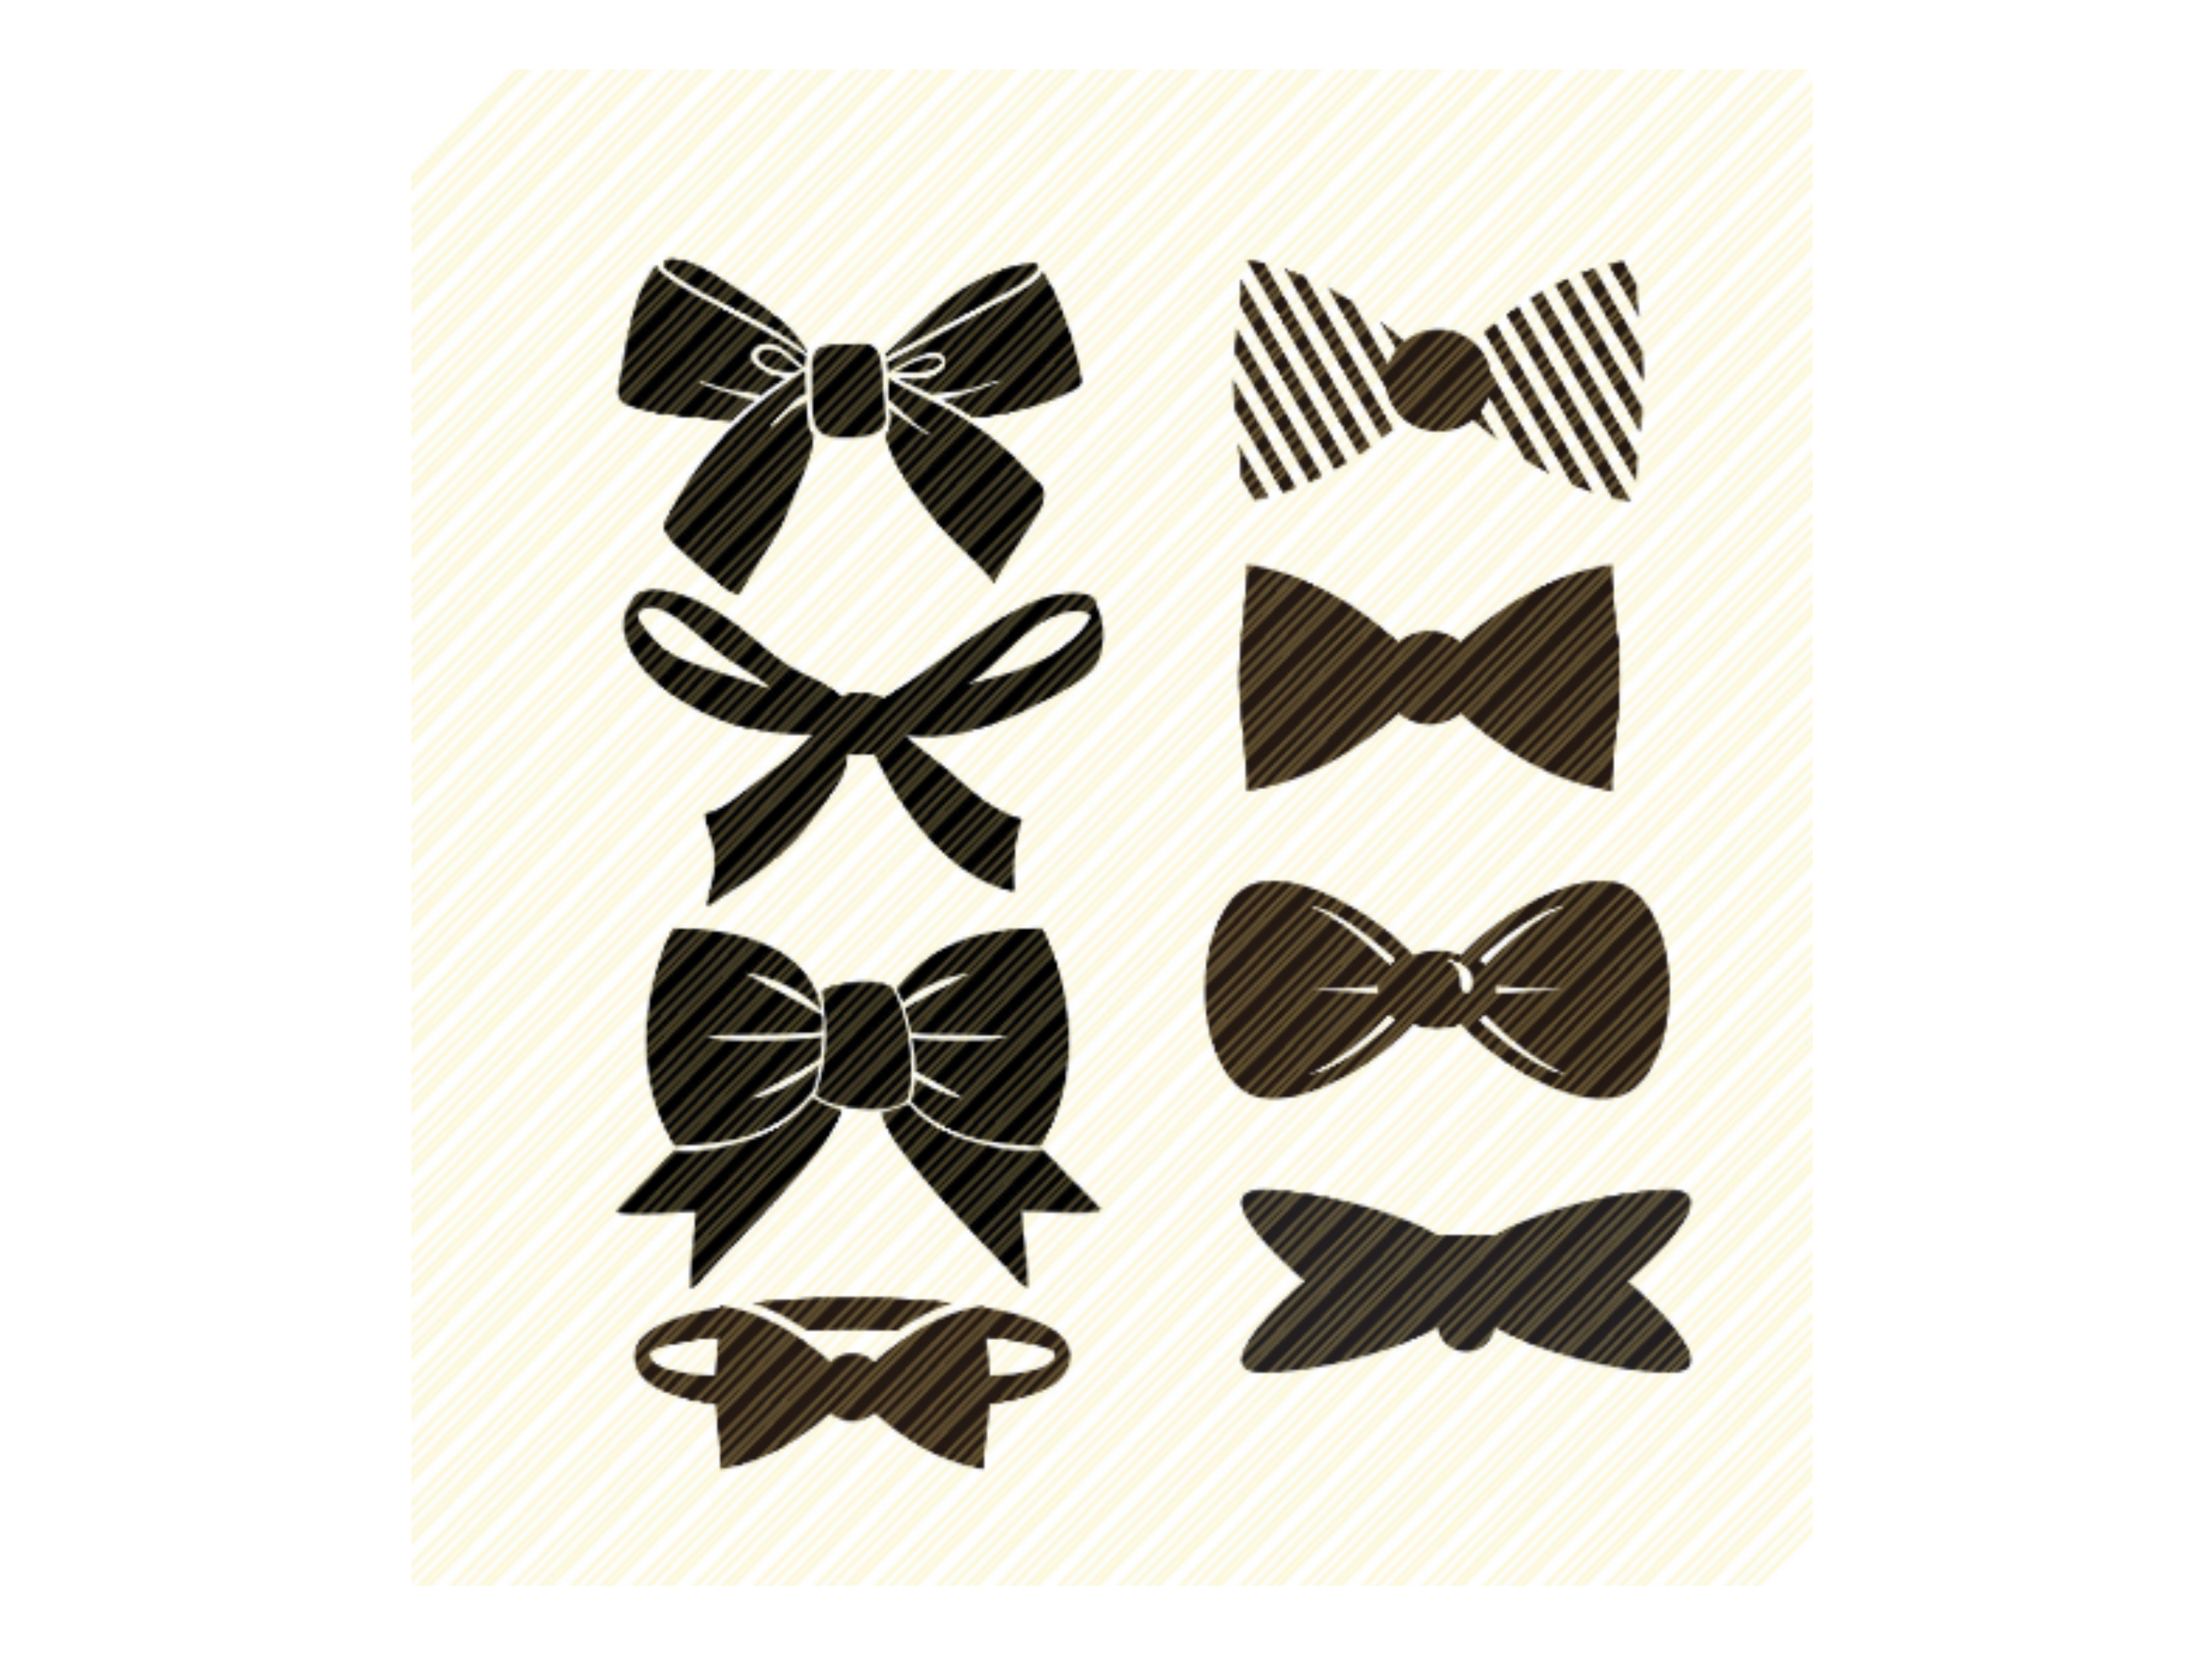 Bow Tie Hair Bow Bows Set Graphic Graphic By Svgplacedesign Creative Fabrica